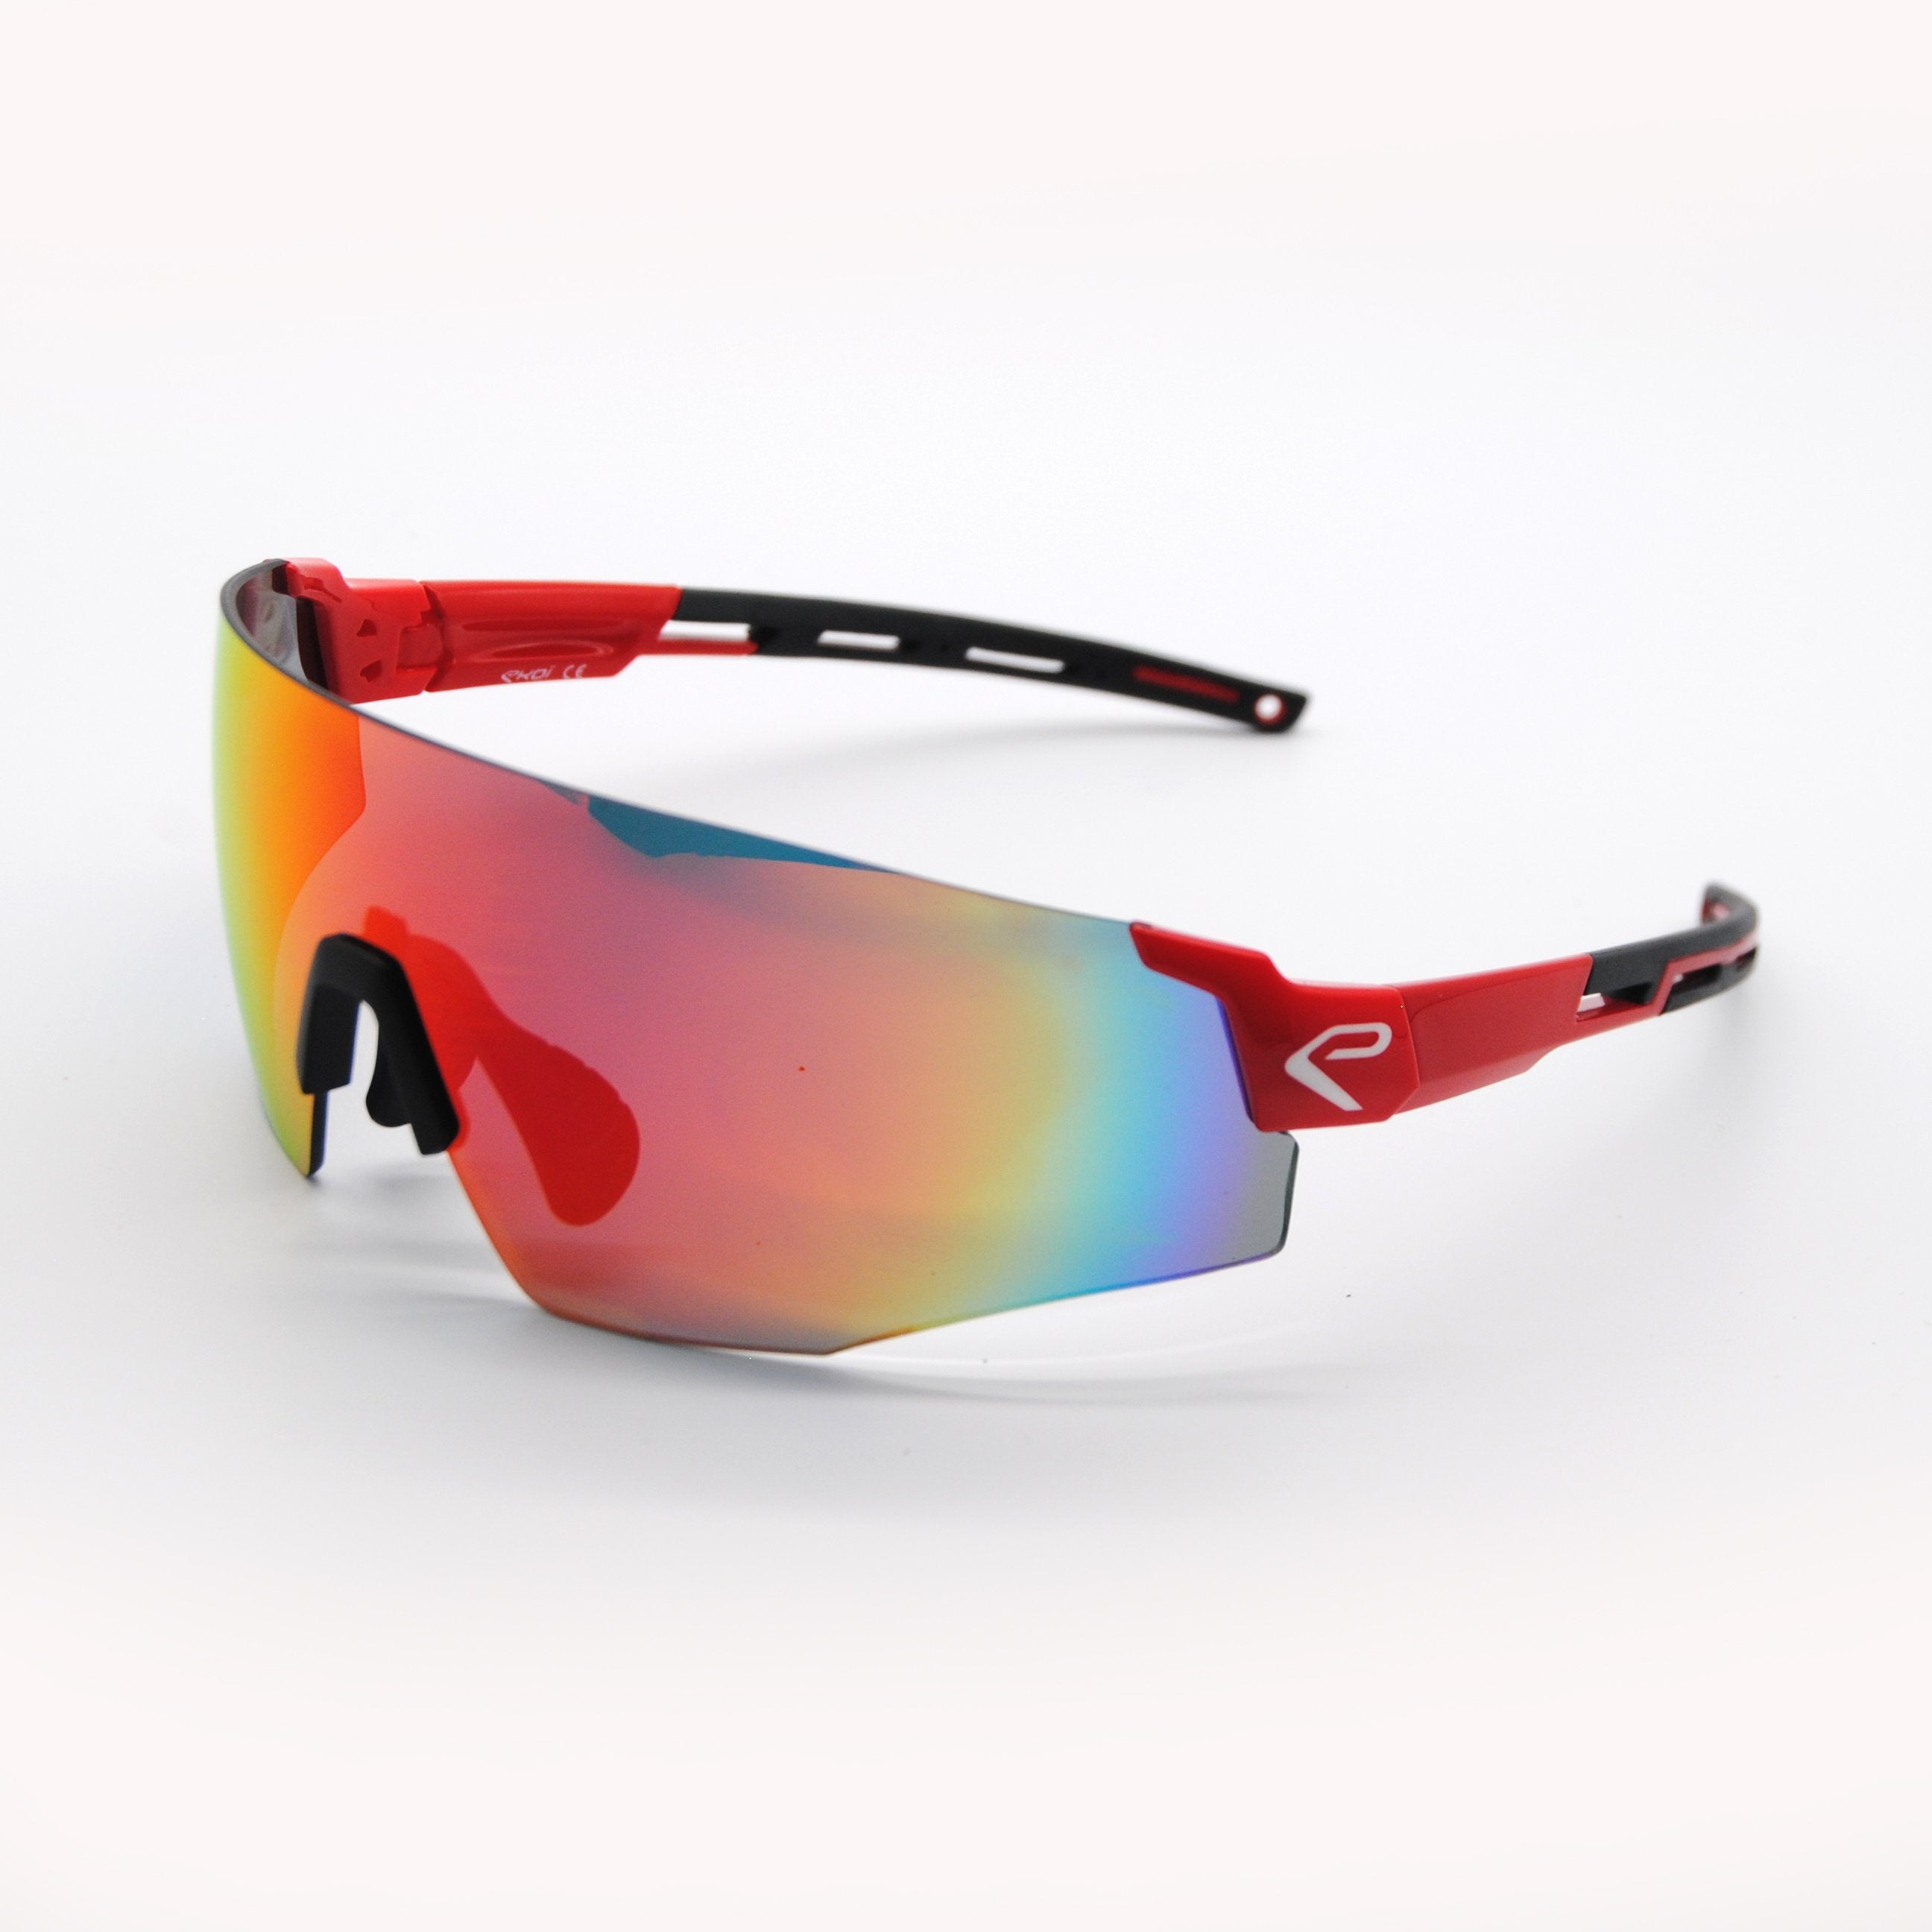 EKOI SUN OPTION RED SUNGLASSES